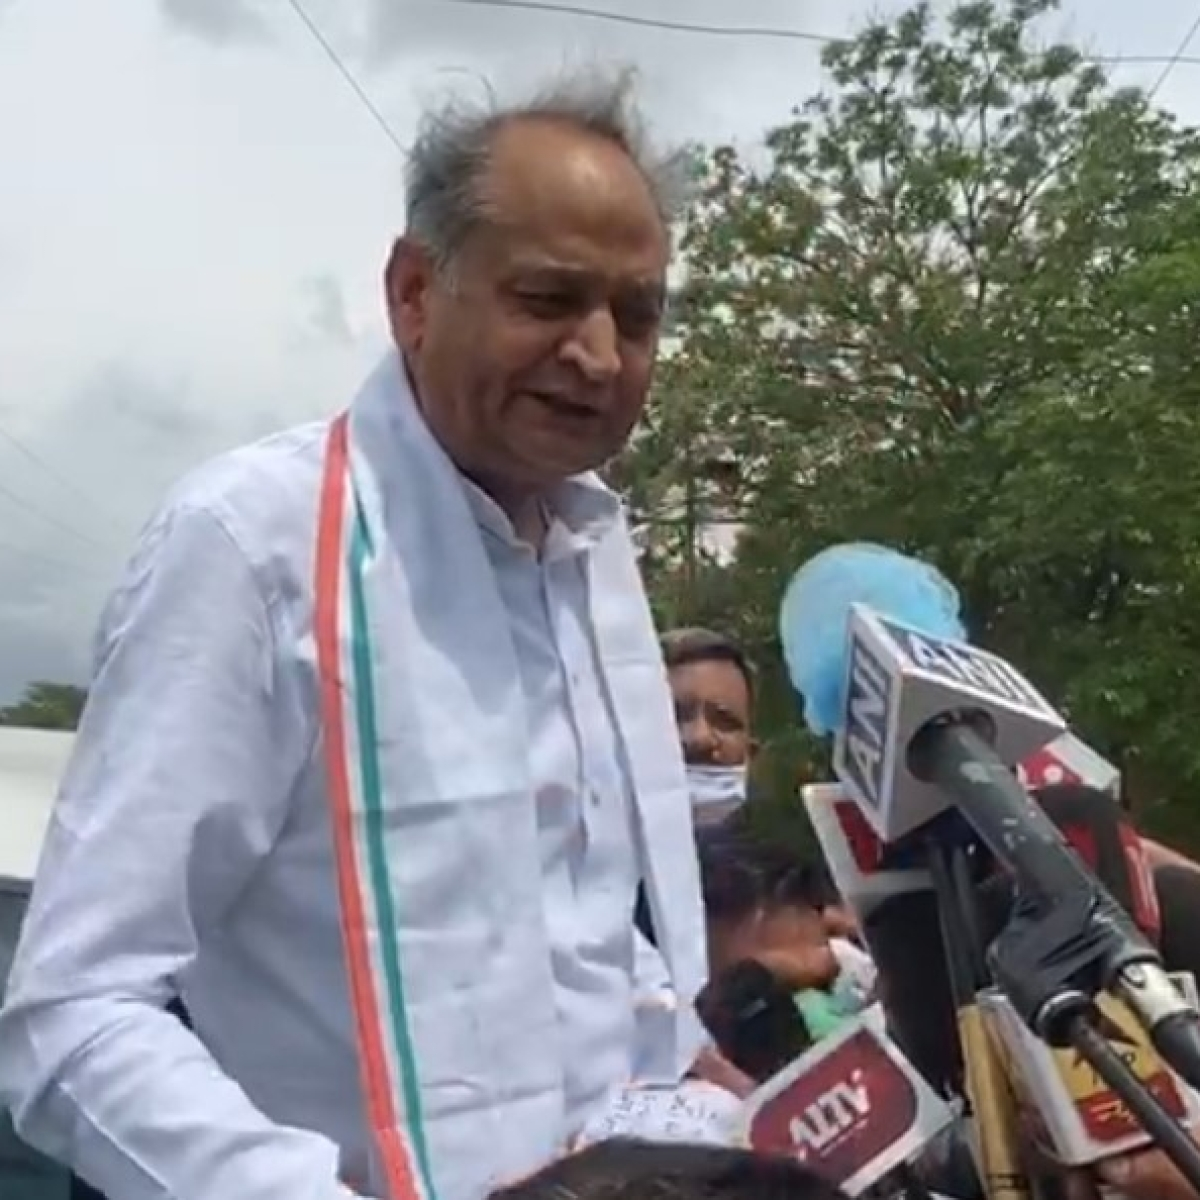 Gehlot writes to PM on bribe attempts SC to take a call on speaker's role today